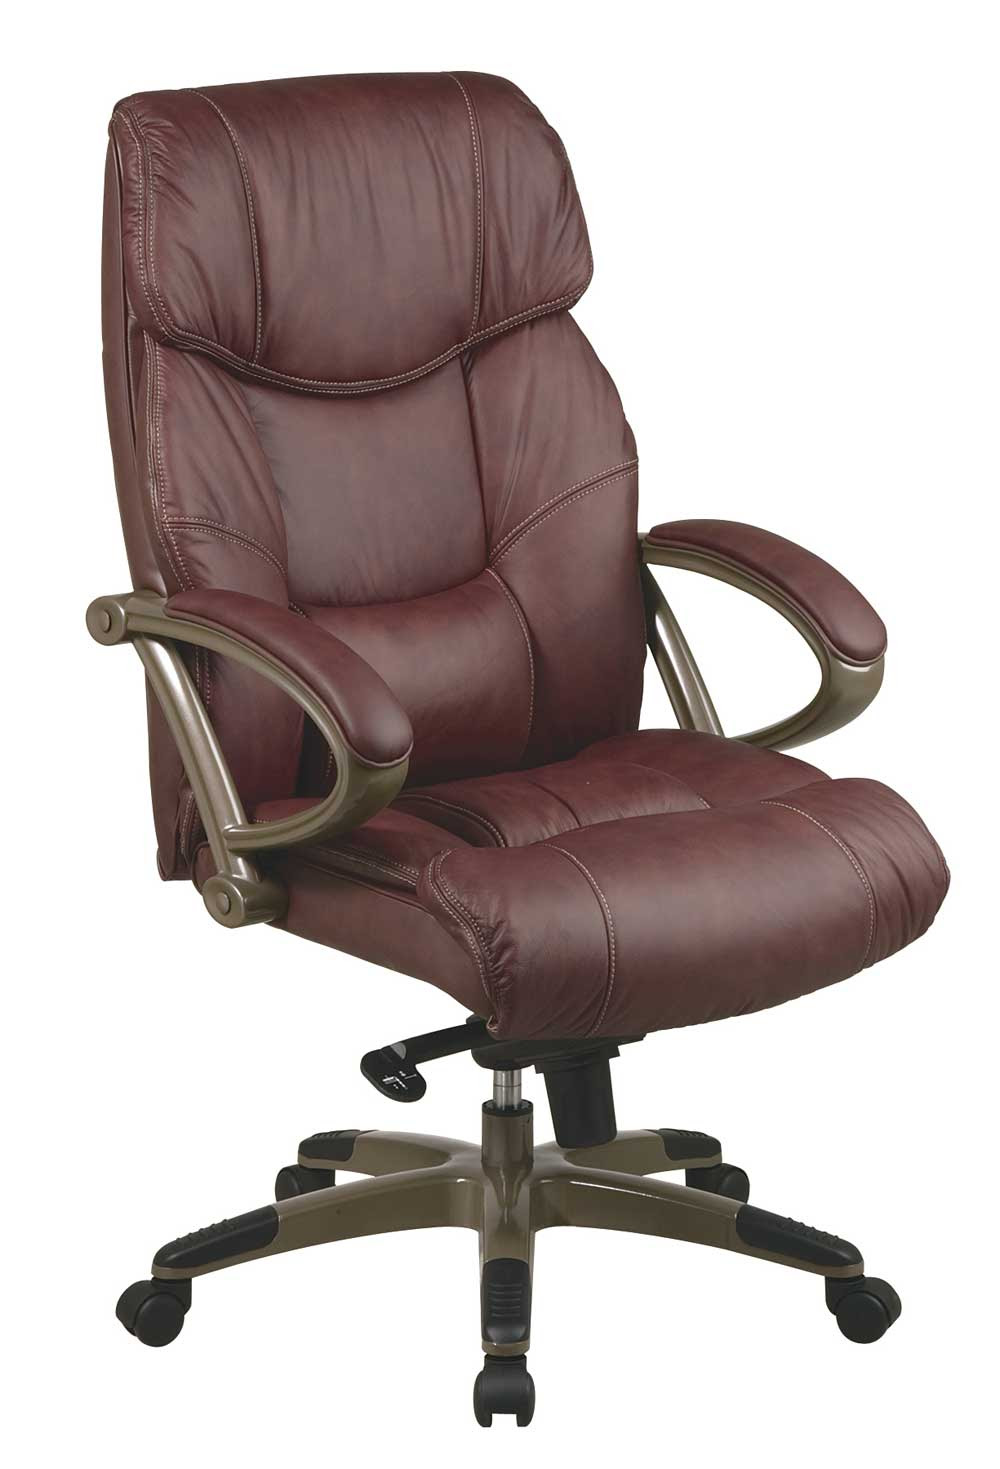 Comfy Desk Chairs   Office Furniture